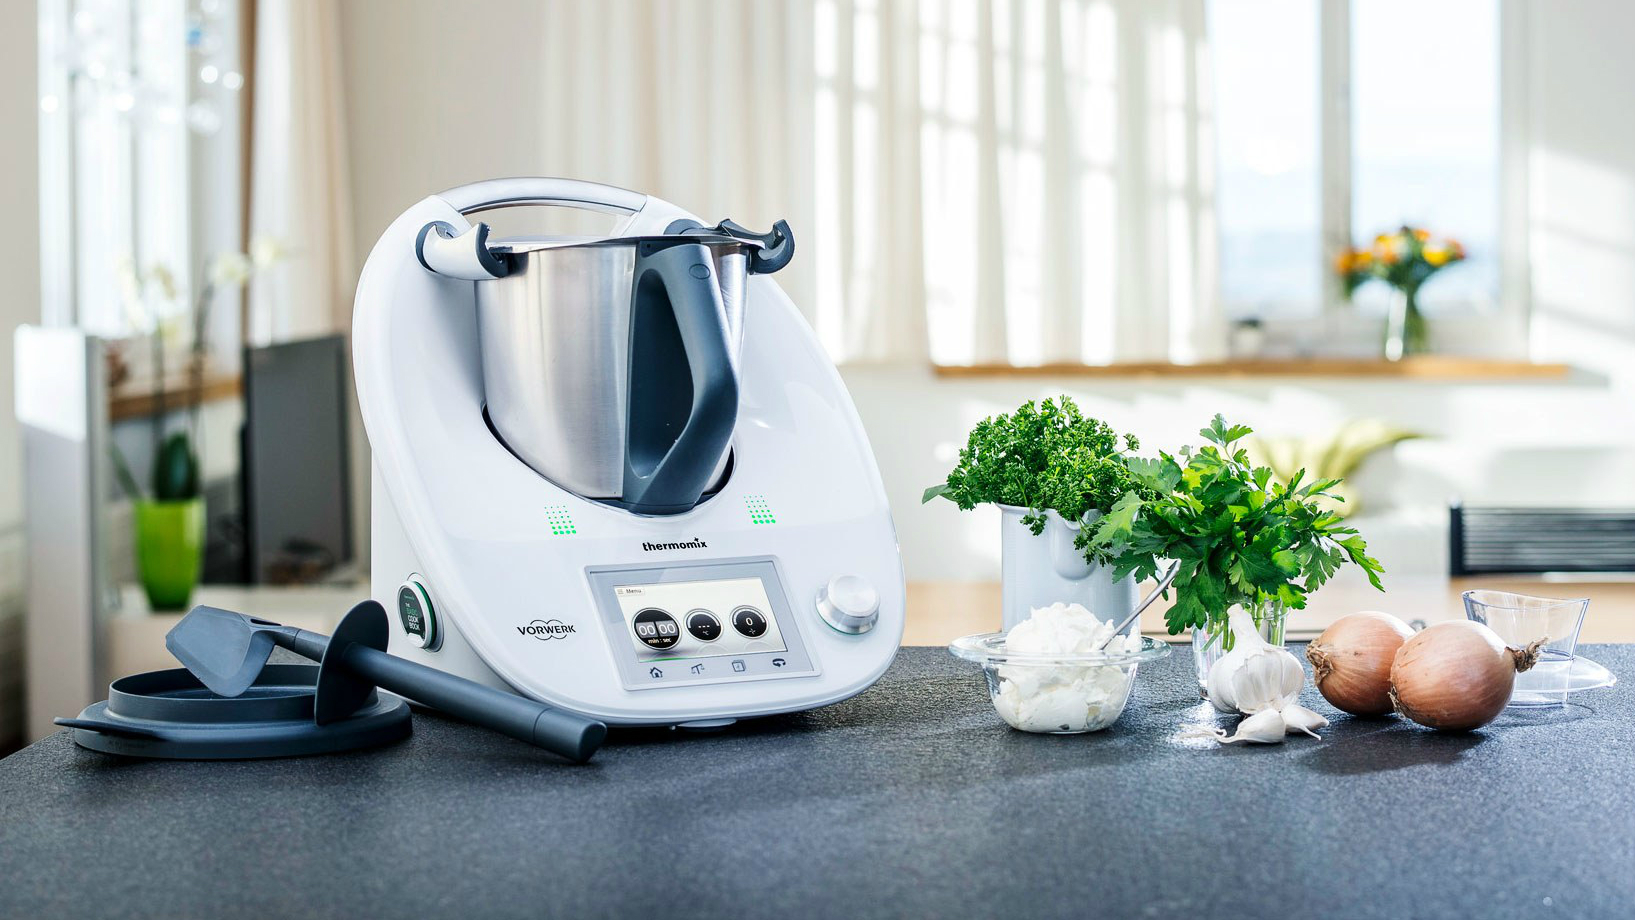 Thermomix Vorwerks 1450 Kitchen Appliance Is Coming To The US Quartz